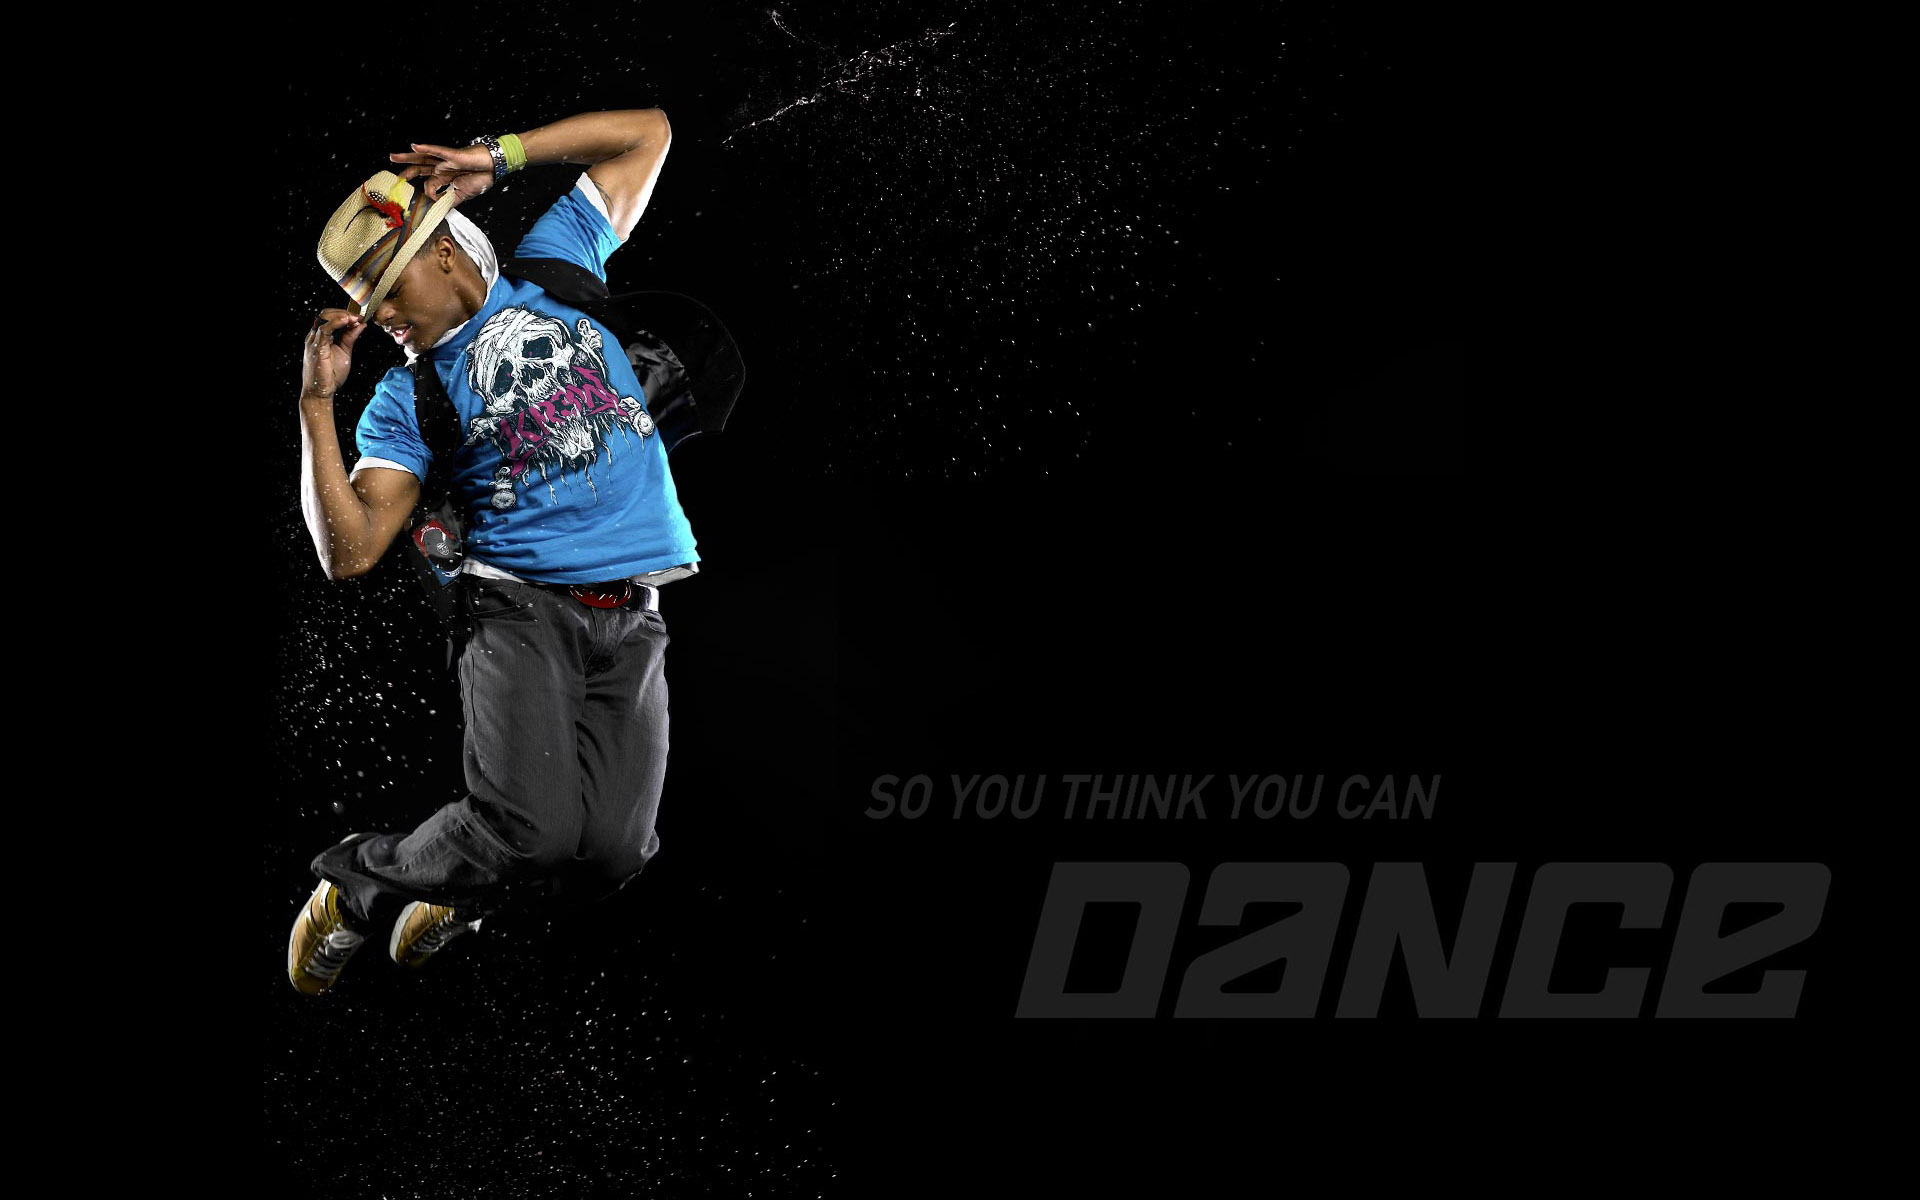 So You Think You Can Dance Tv Man Male Dancing Dancer Dance Wallpaper 1920x1200